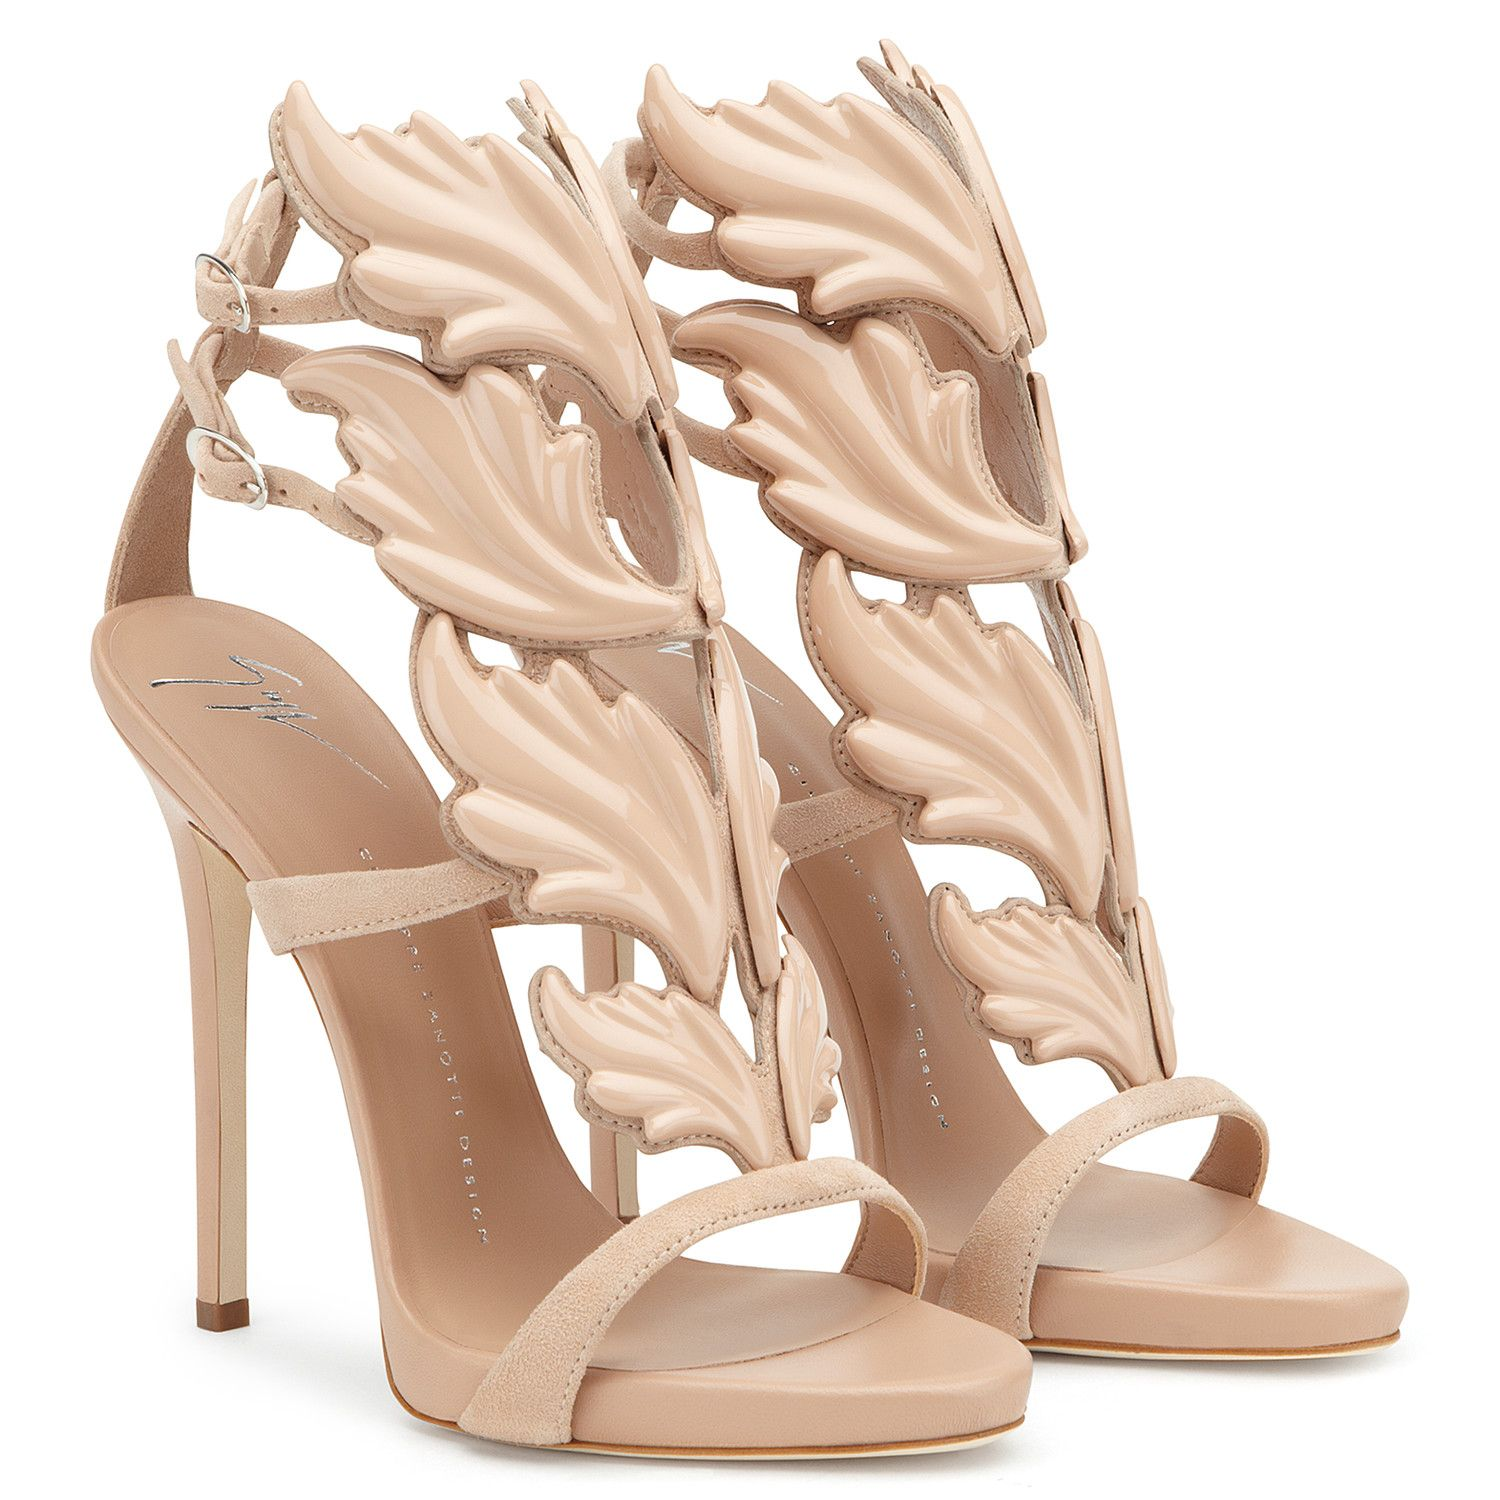 6c14bcd06be09 Cruel - Sandals - Pink | Giuseppe Zanotti | Shoe Obsession in 2019 ...